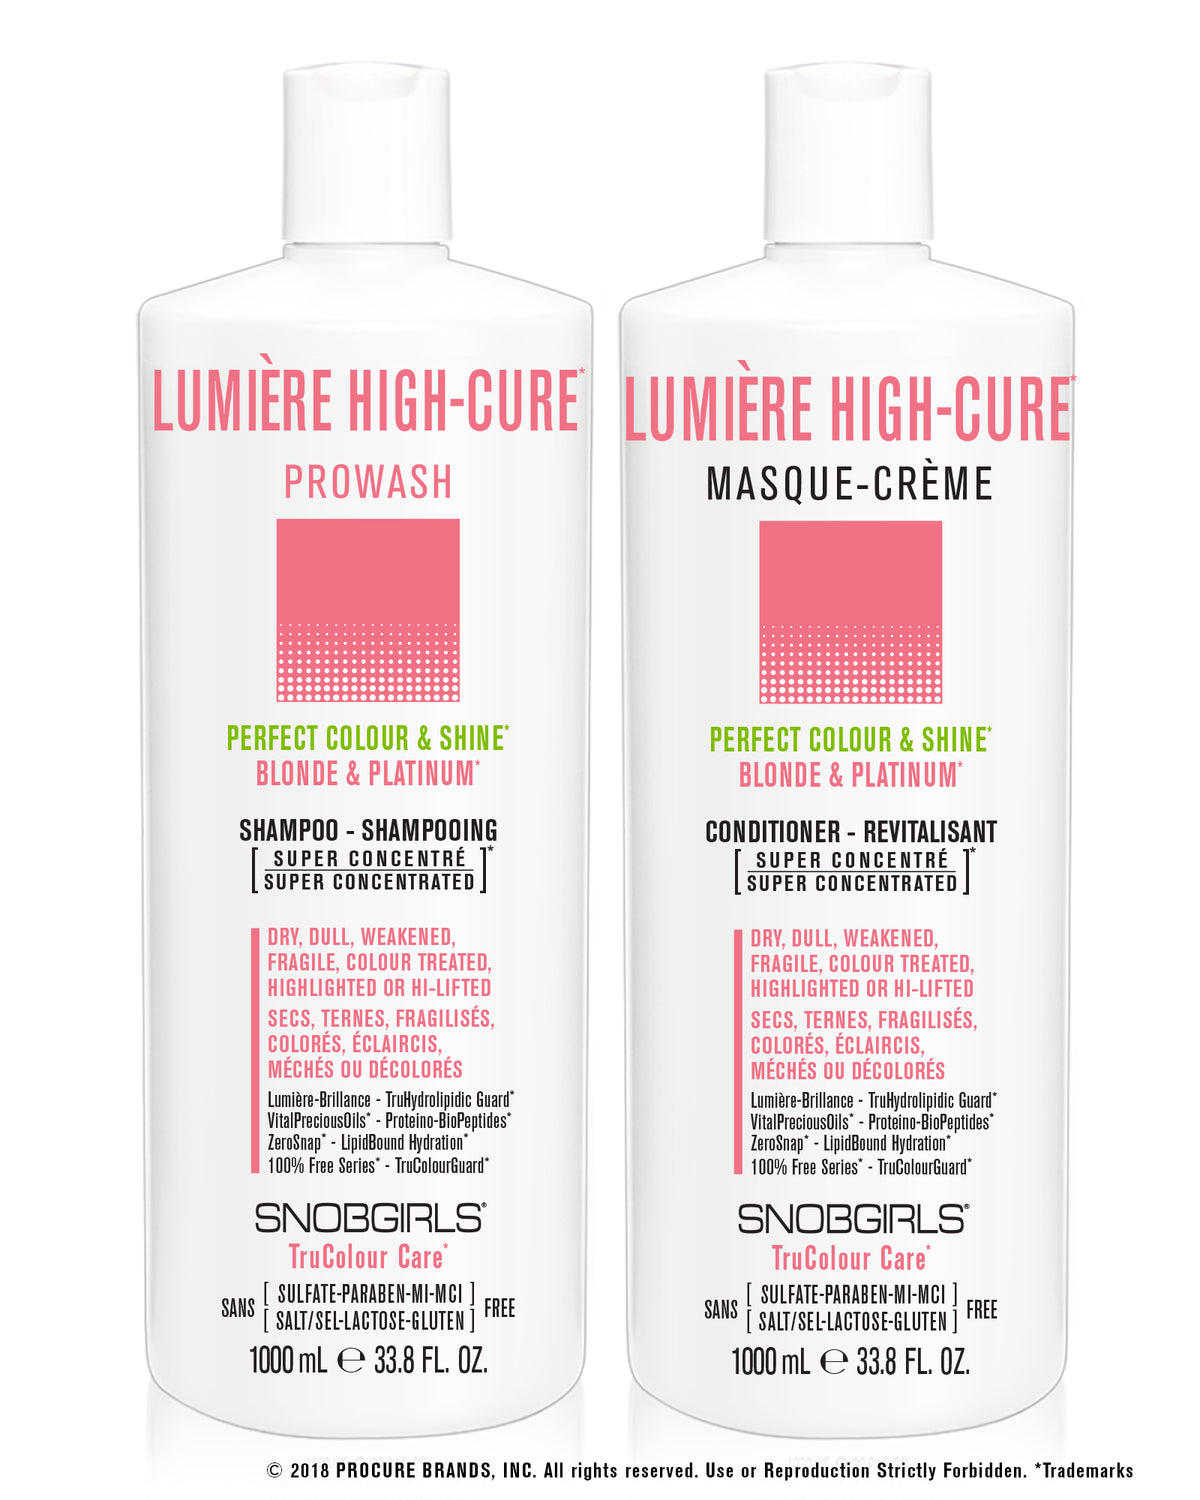 DUO LUMIERE HIGH-CURE - Prowash + Masque-Creme 1000 mL - SNOBGIRLS.com